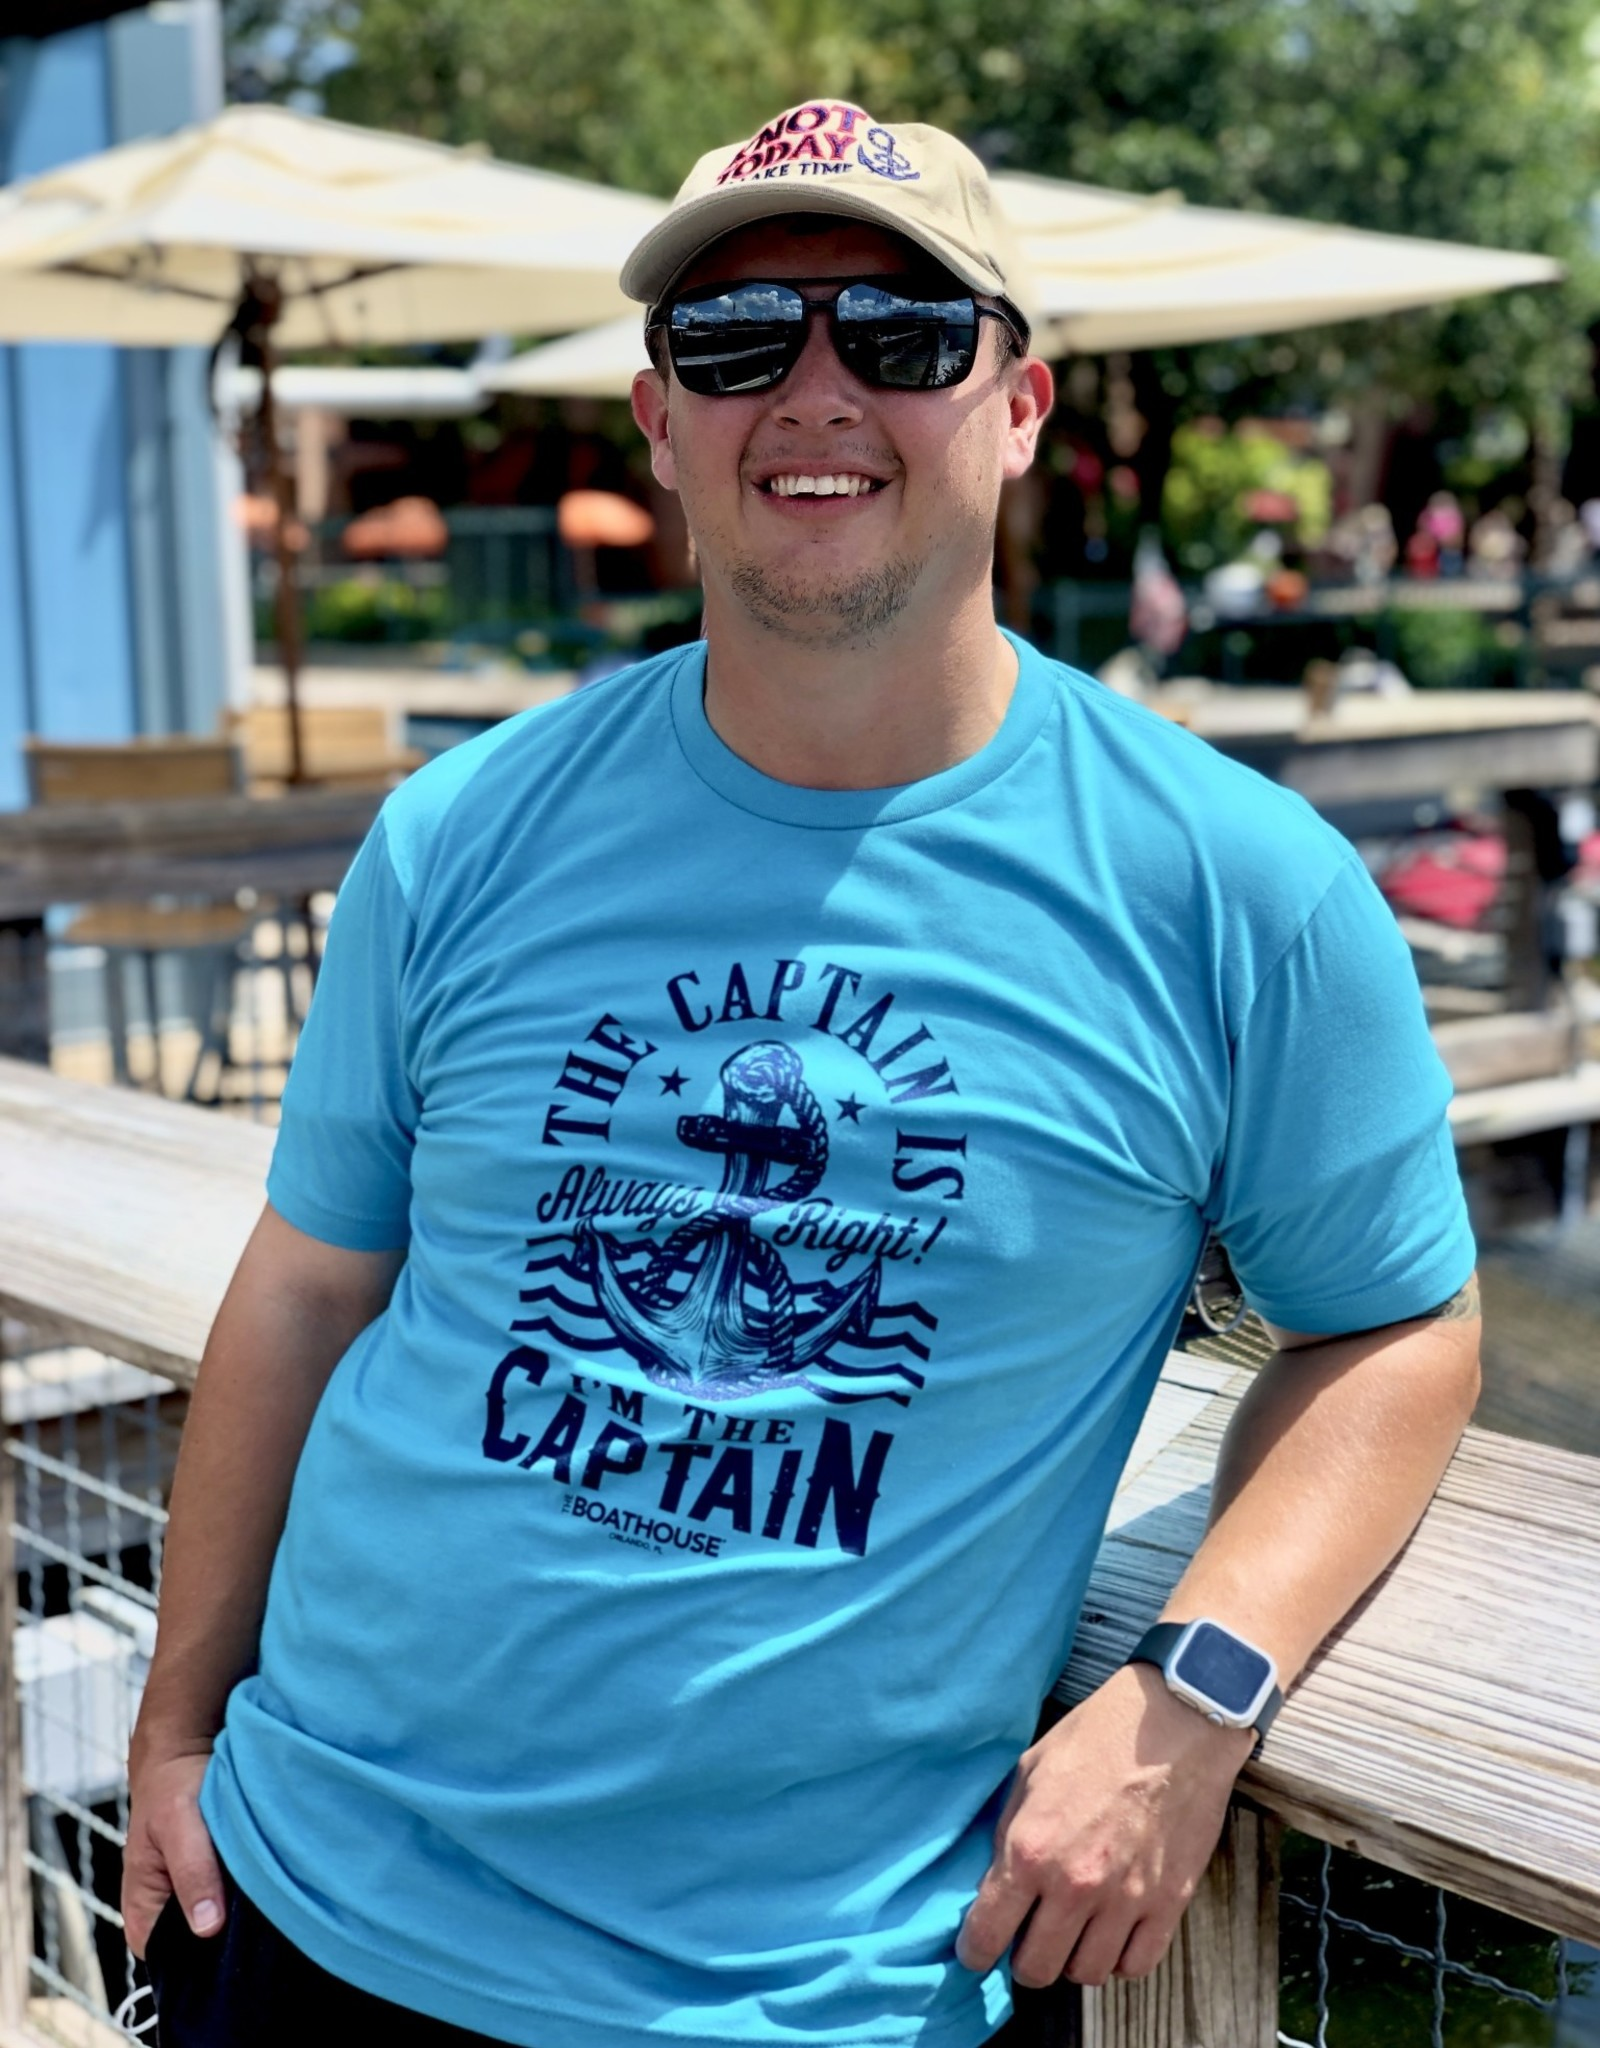 CAPTAIN IS RIGHT I'M THE CAPTAIN TEE